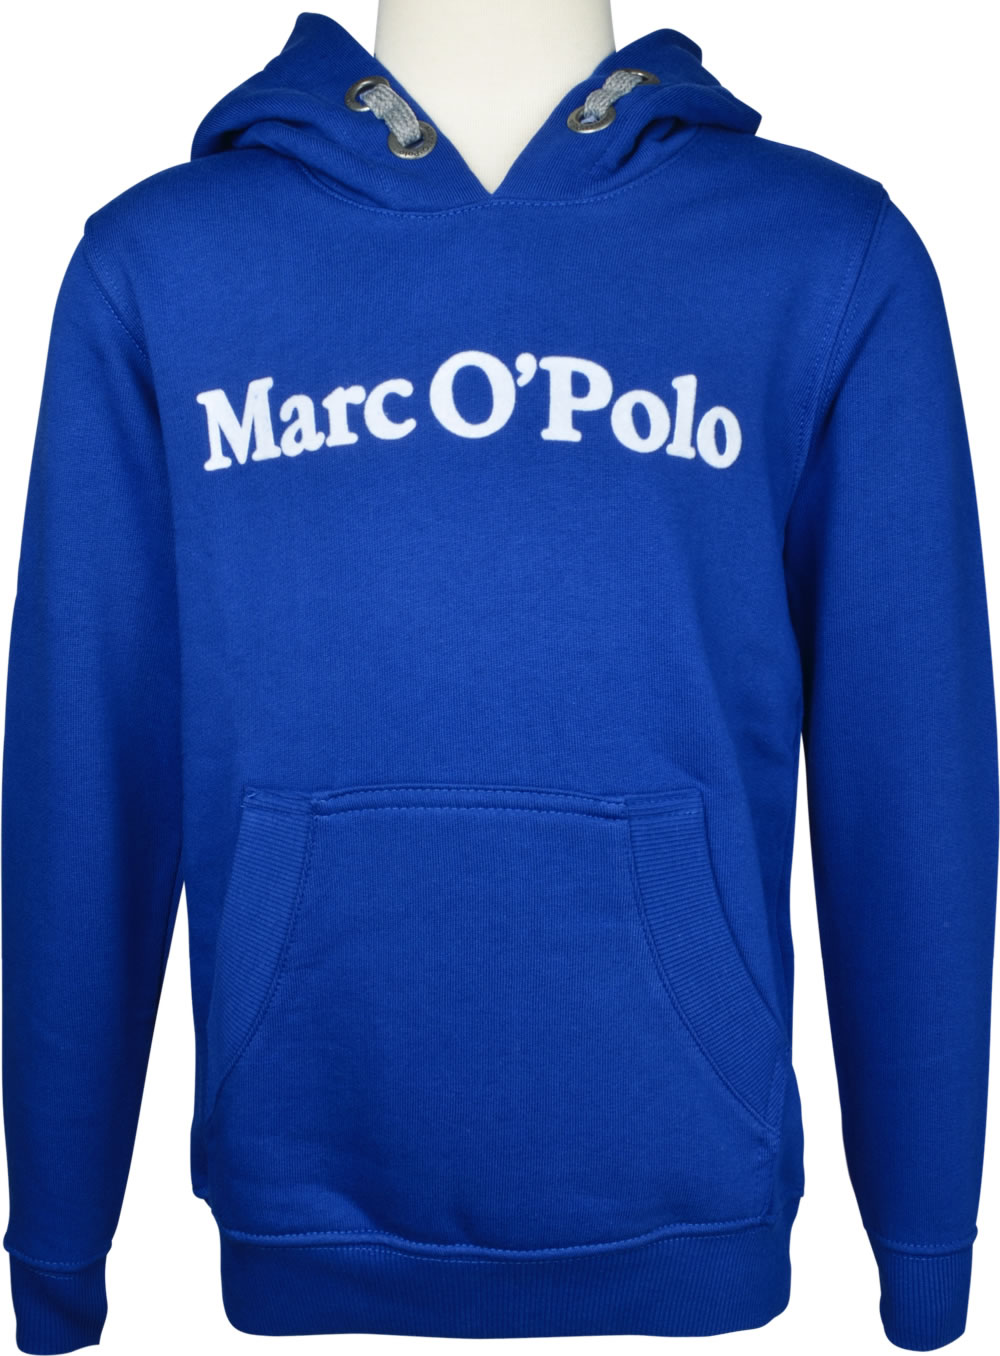 Marc O'Polo Sweatshirt Kids Boys sodalite blue 1824523 3136